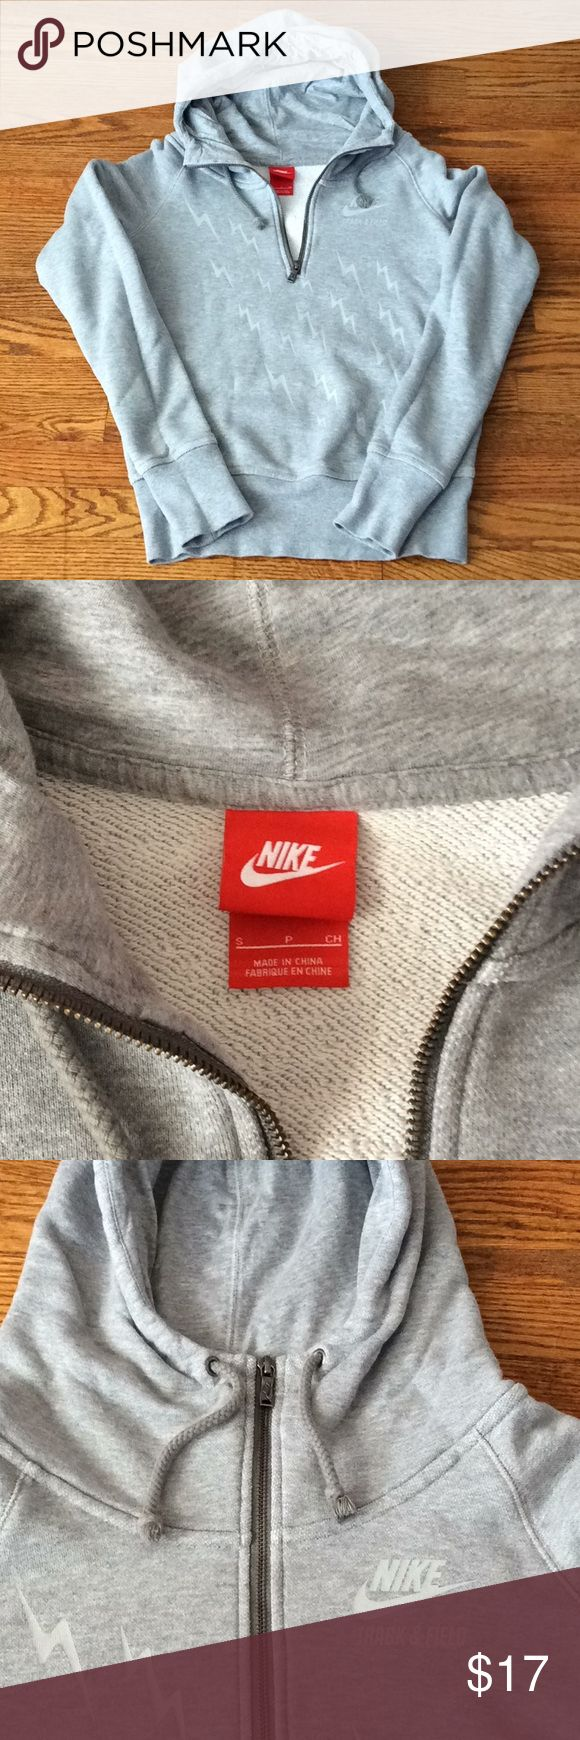 "NIKE 1/4 Zip Hoodie Solid heather gray hoodie, jersey lined hood, ⚡️⚡️⚡️⚡️ graphics, Nike swoosh with track and field and wide cuffs at wrist and hem. Awesome hoodie for any Nike lover. P-P 20"" S-H 25"" Pit to cuff 22 1/2"" Nike Tops Sweatshirts & Hoodies"